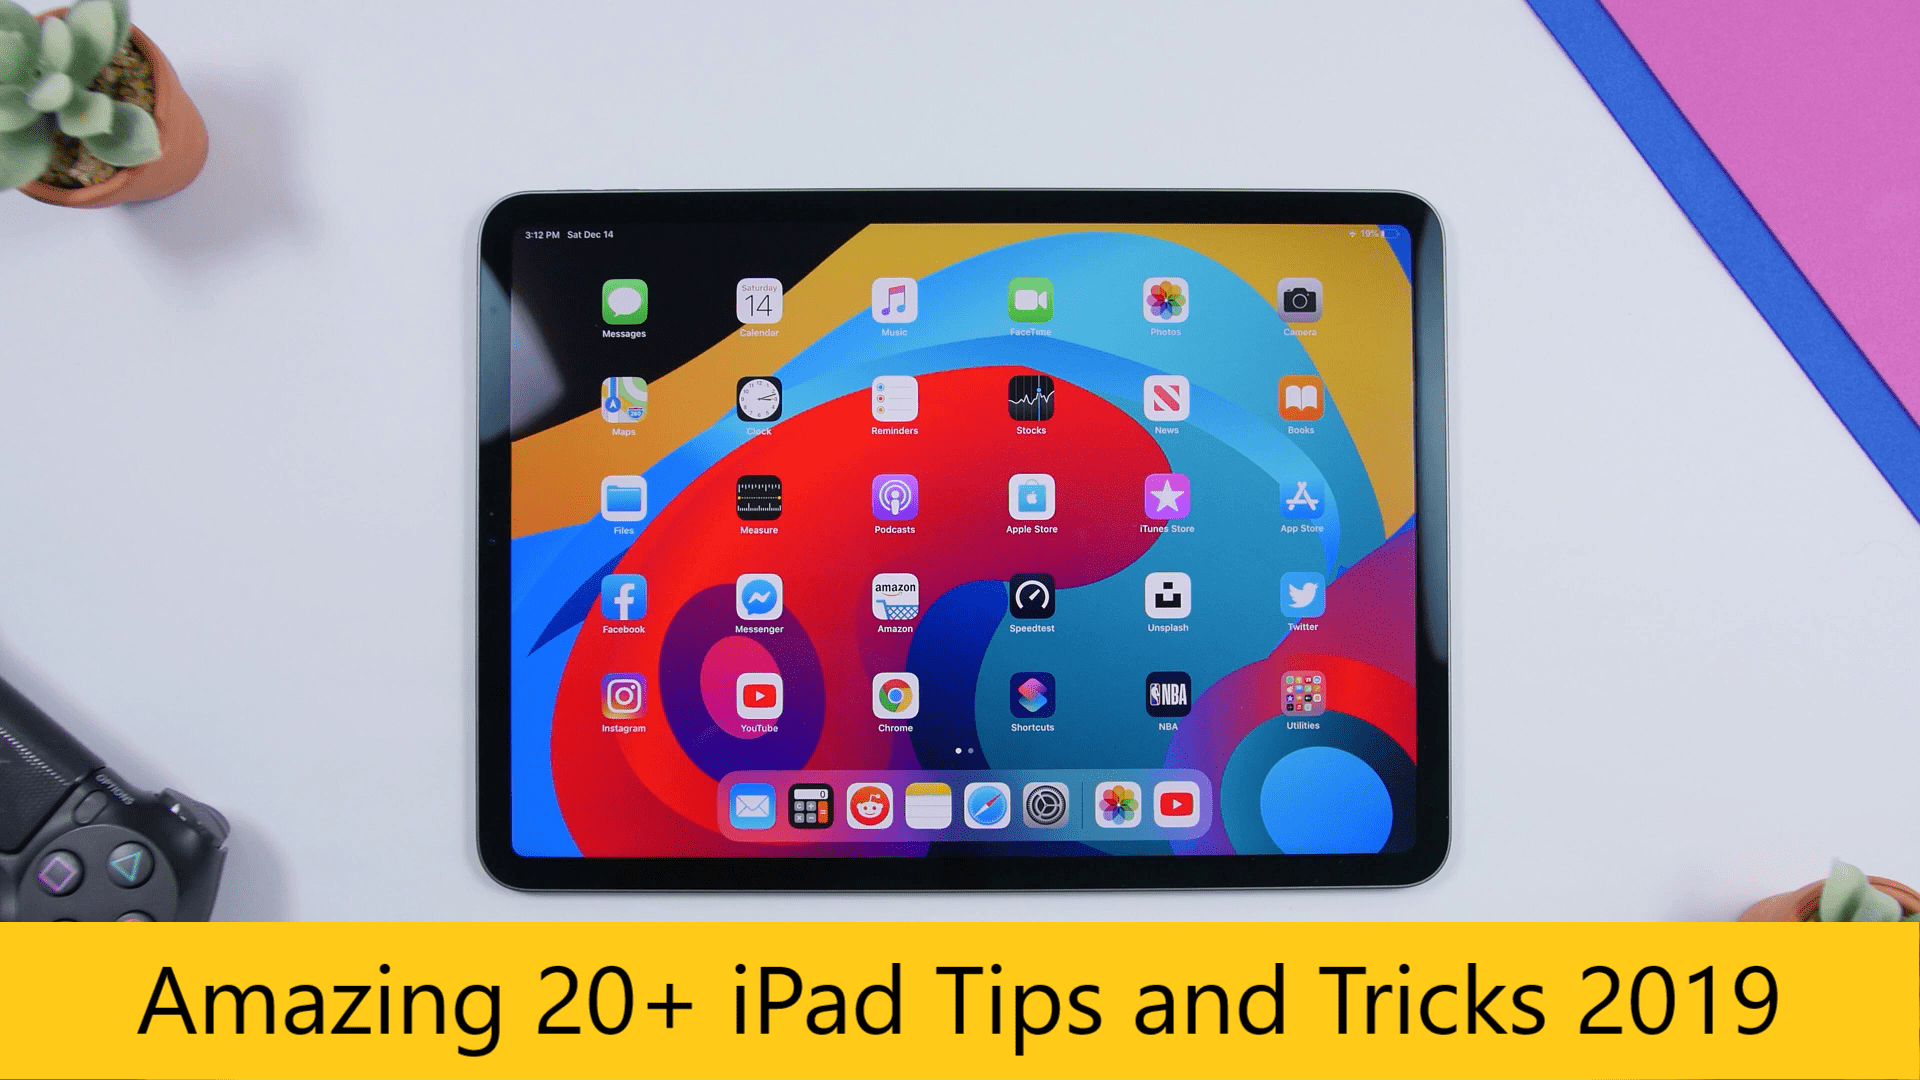 iPad Tips and Tricks 2019